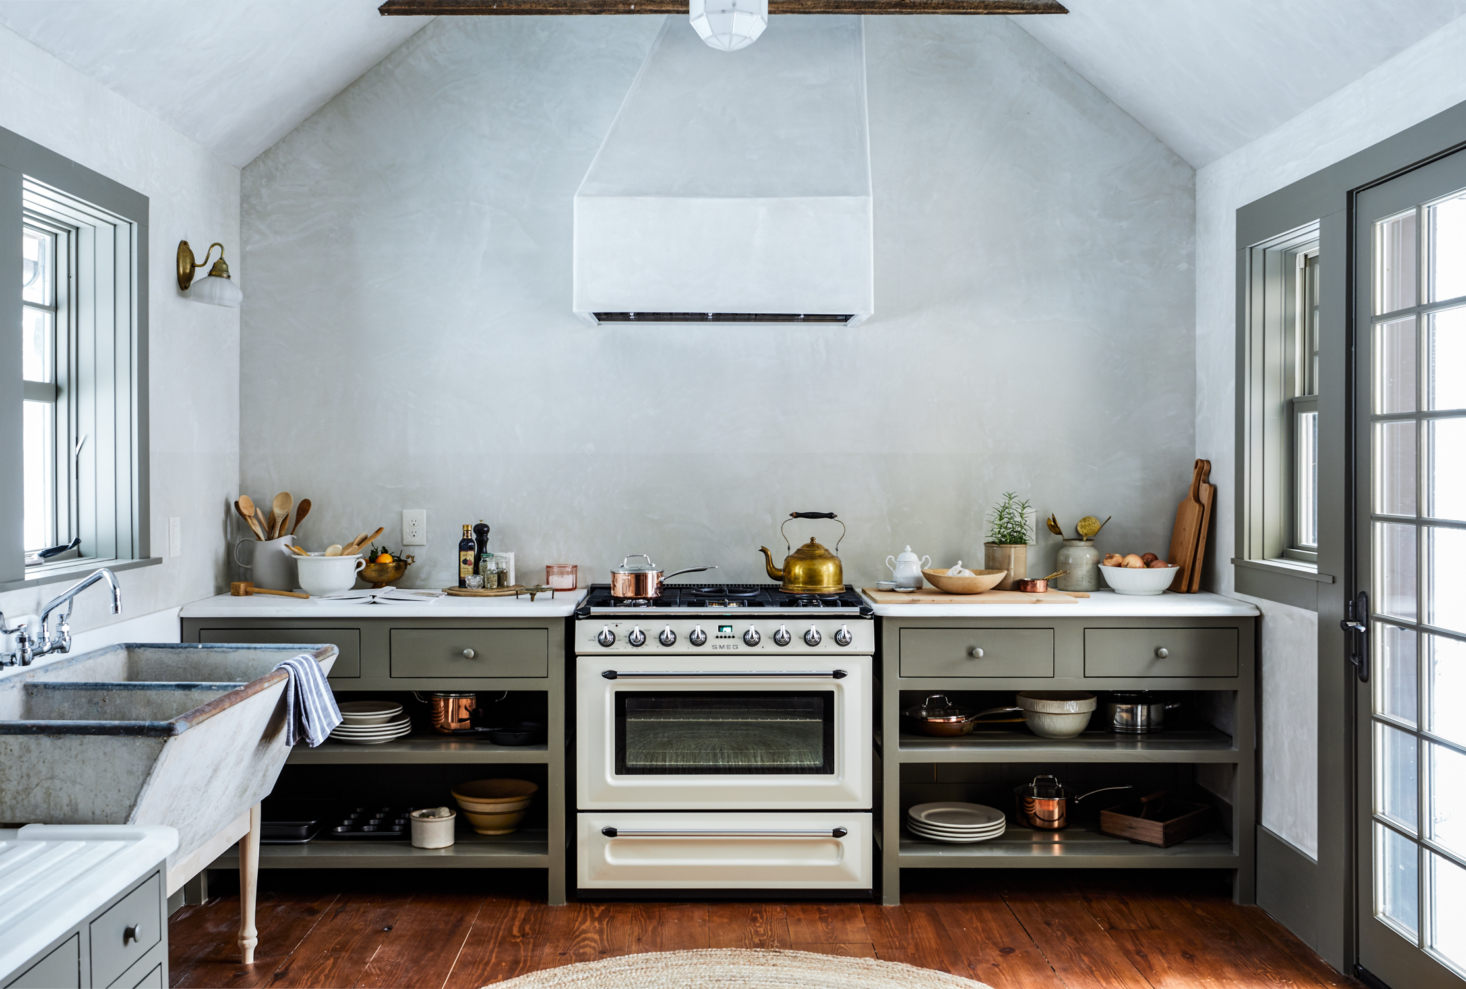 A lovely kitchen with a sloped ceiling.